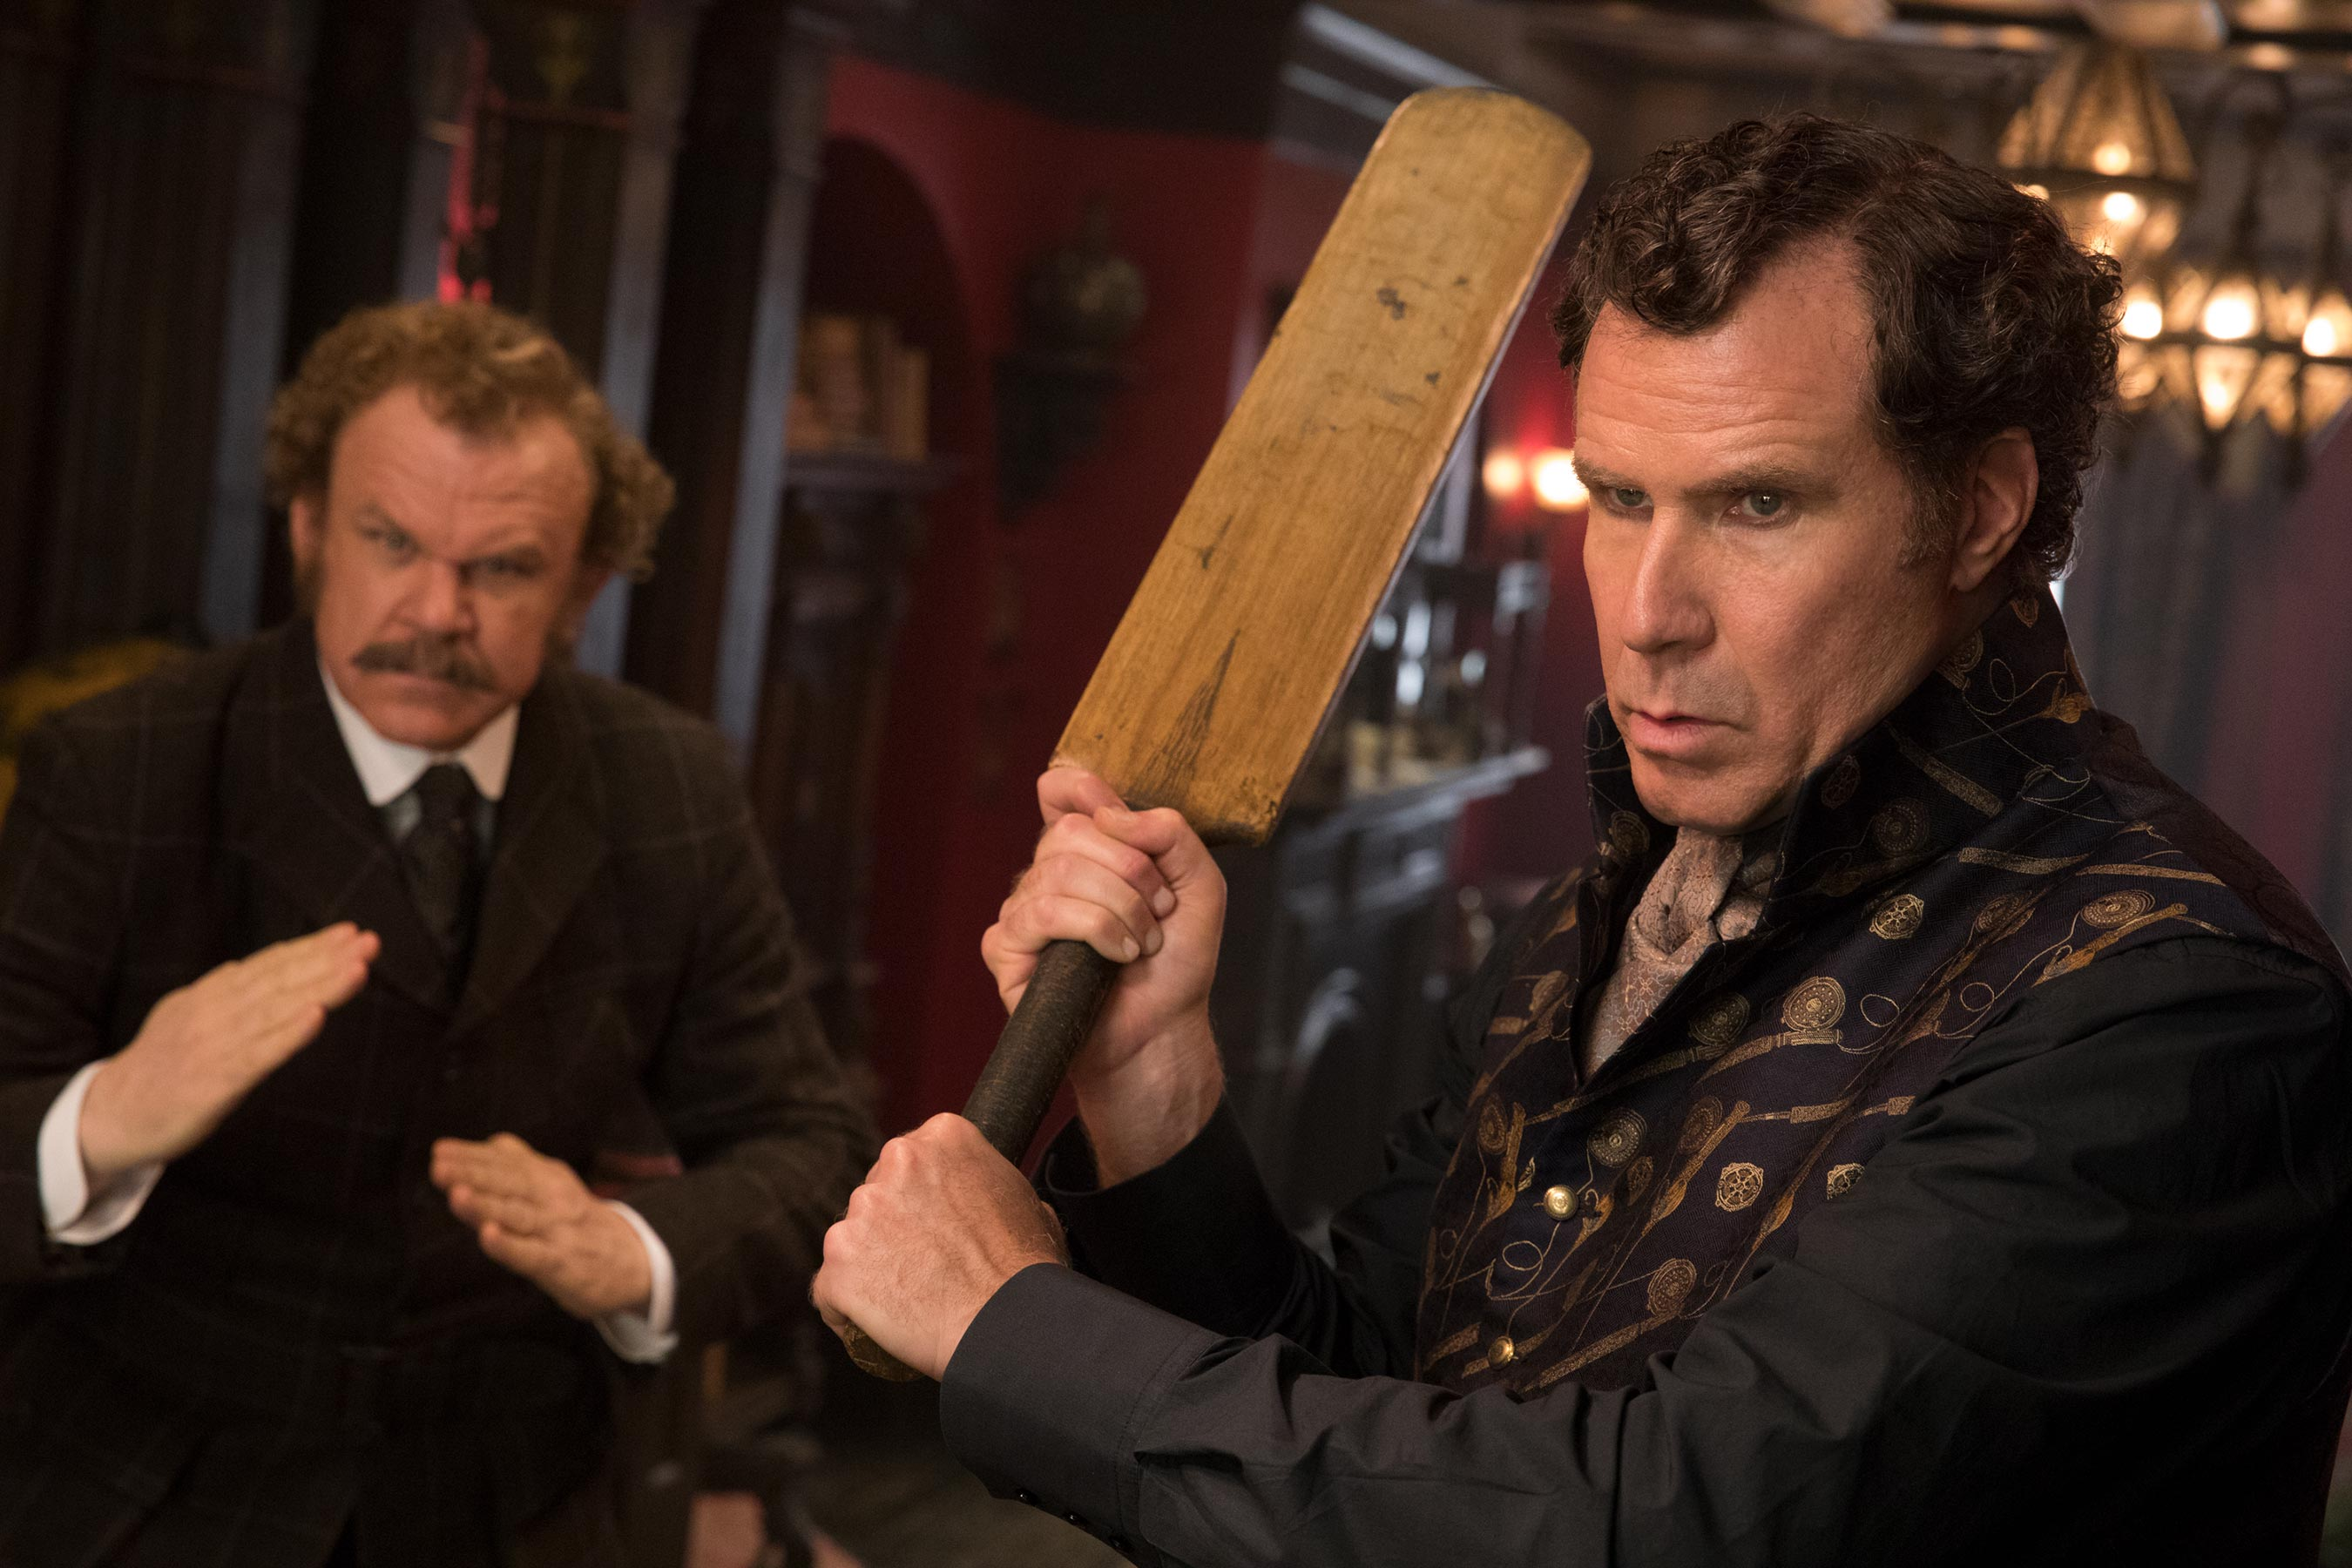 Holmes & Watson review: Will Ferrell, John C. Reilly wasted